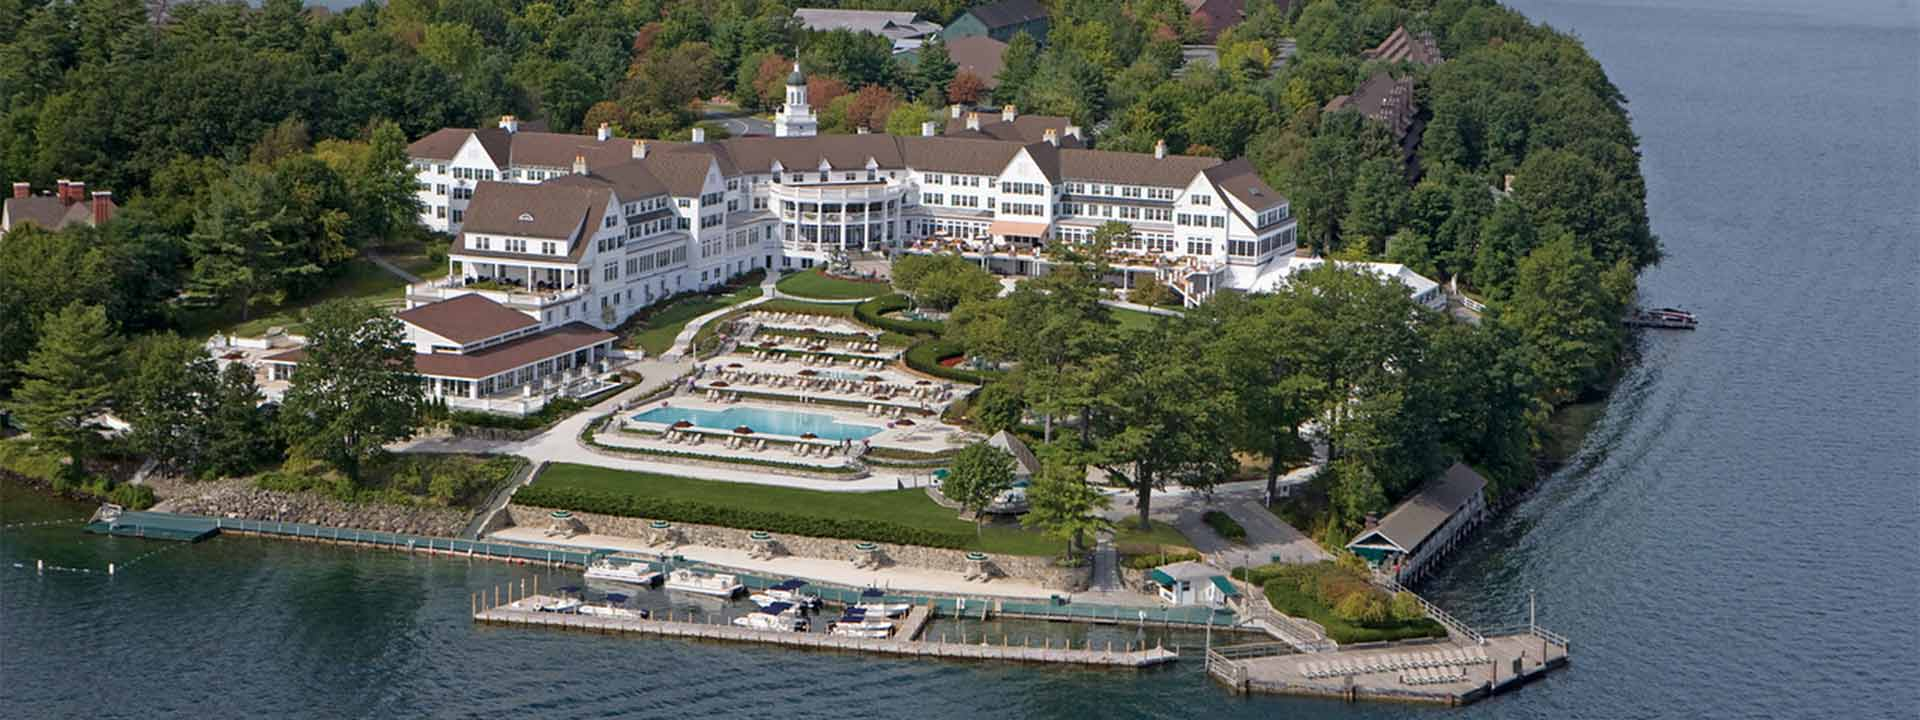 A view of The Sagamore Resort in New York.